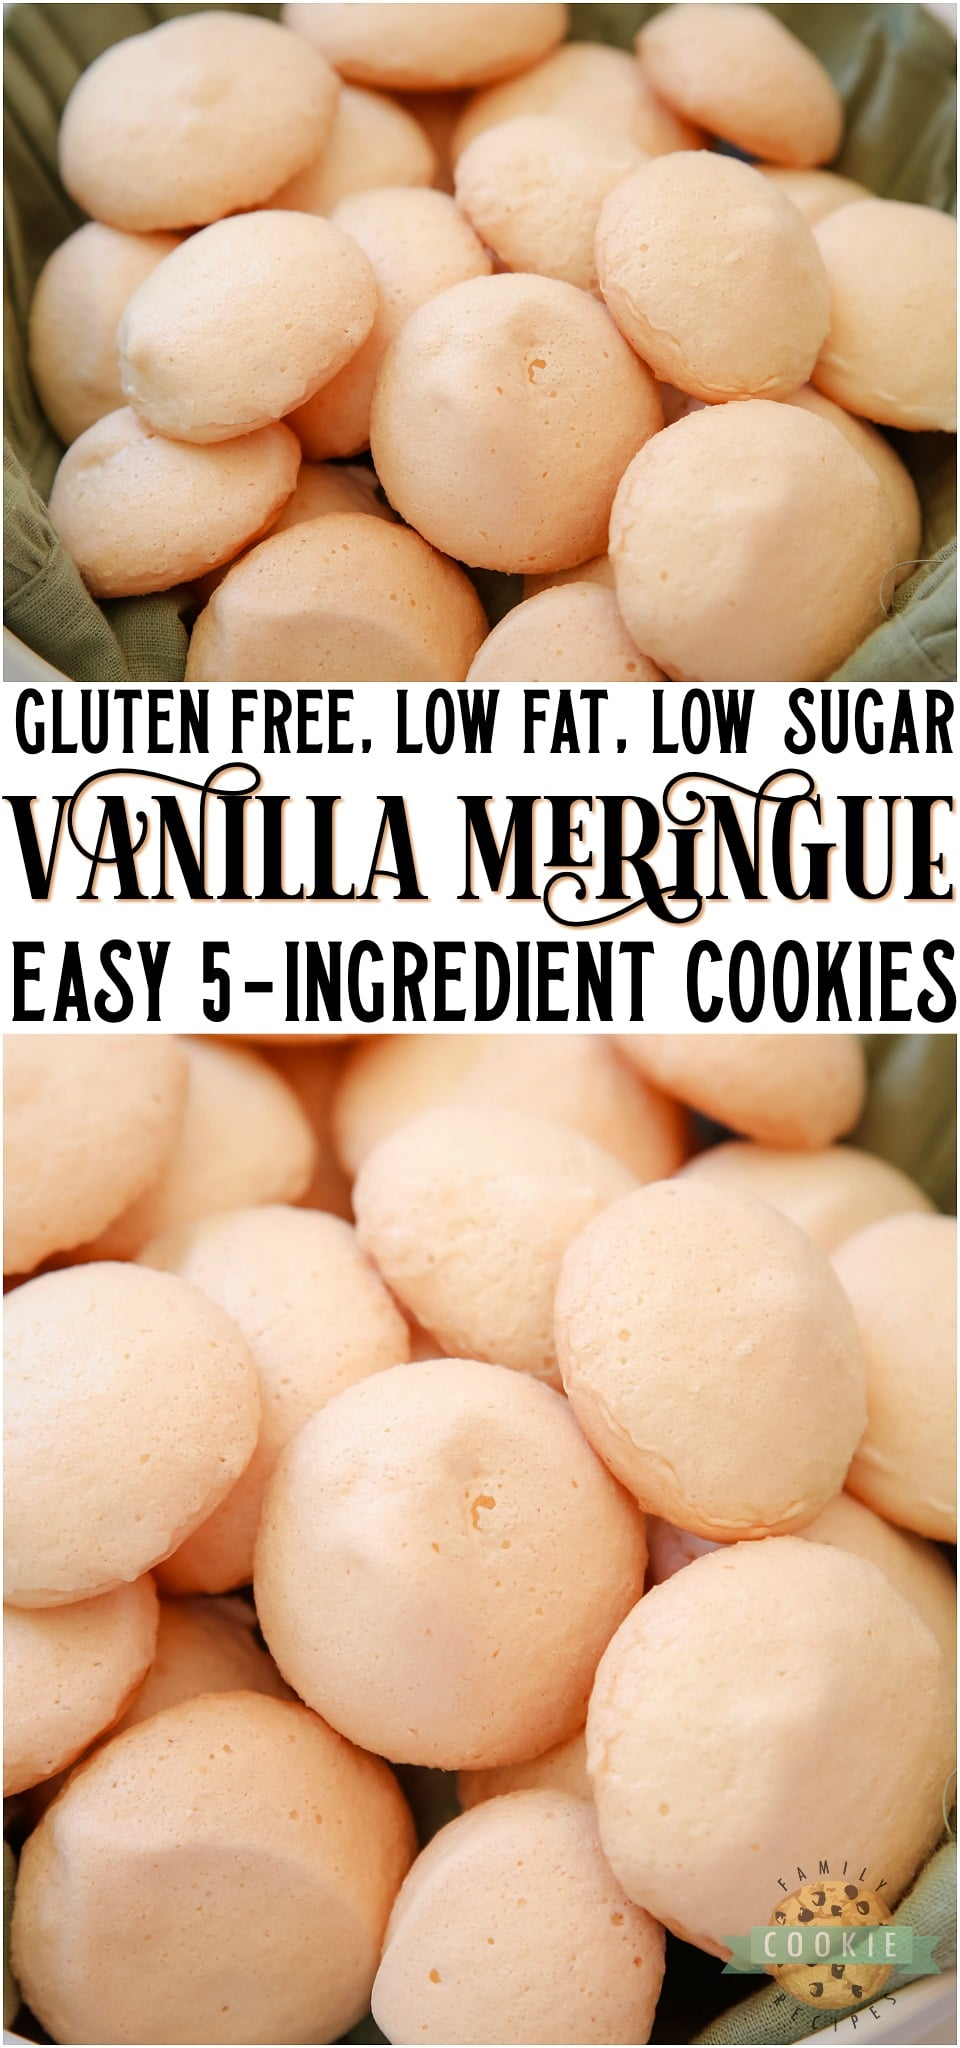 Easy Vanilla Meringue Cookies made with just 5 ingredients that you probably already have in your pantry! Simple gluten free, low fat, low sugar meringue cookie recipe flavored with vanilla extract for a sweet, crisp and chewy treat. #meringue #vanilla #cookies #lowfat #lowsugar #glutenfree #baking #dessert recipe from FAMILY COOKIE RECIPES via @familycookierecipes